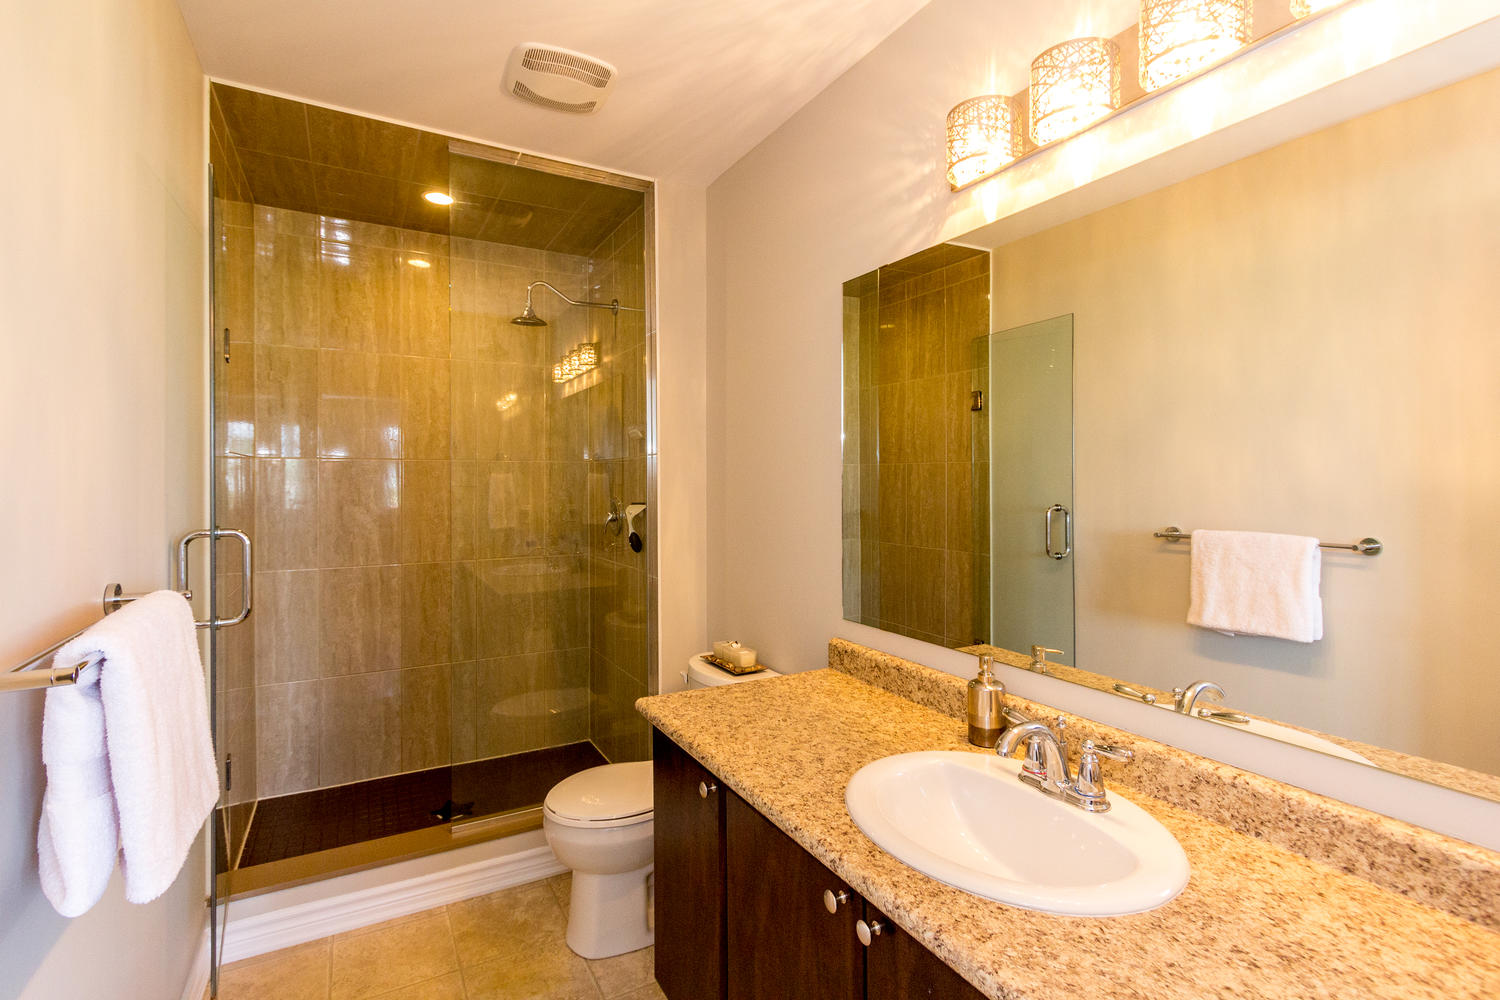 Beautiful Master Ensuite with Lots of Counter Space and a Large Glass Enclosed Shower, big enough for 2 OR MORE :o